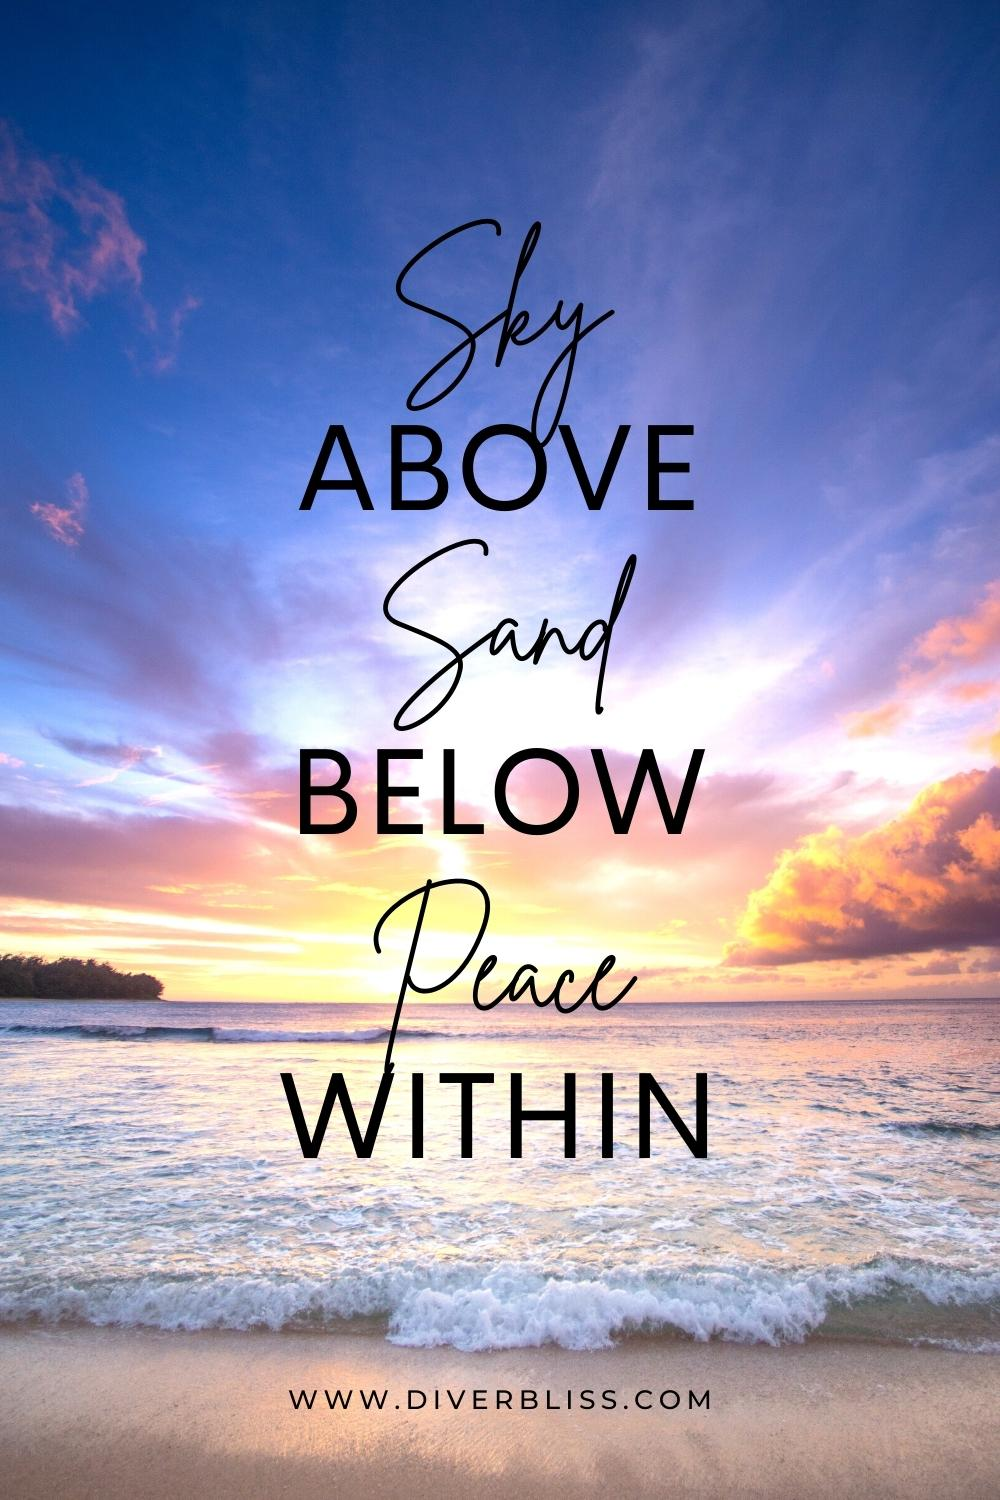 Sky above. Sand below. Peace within.